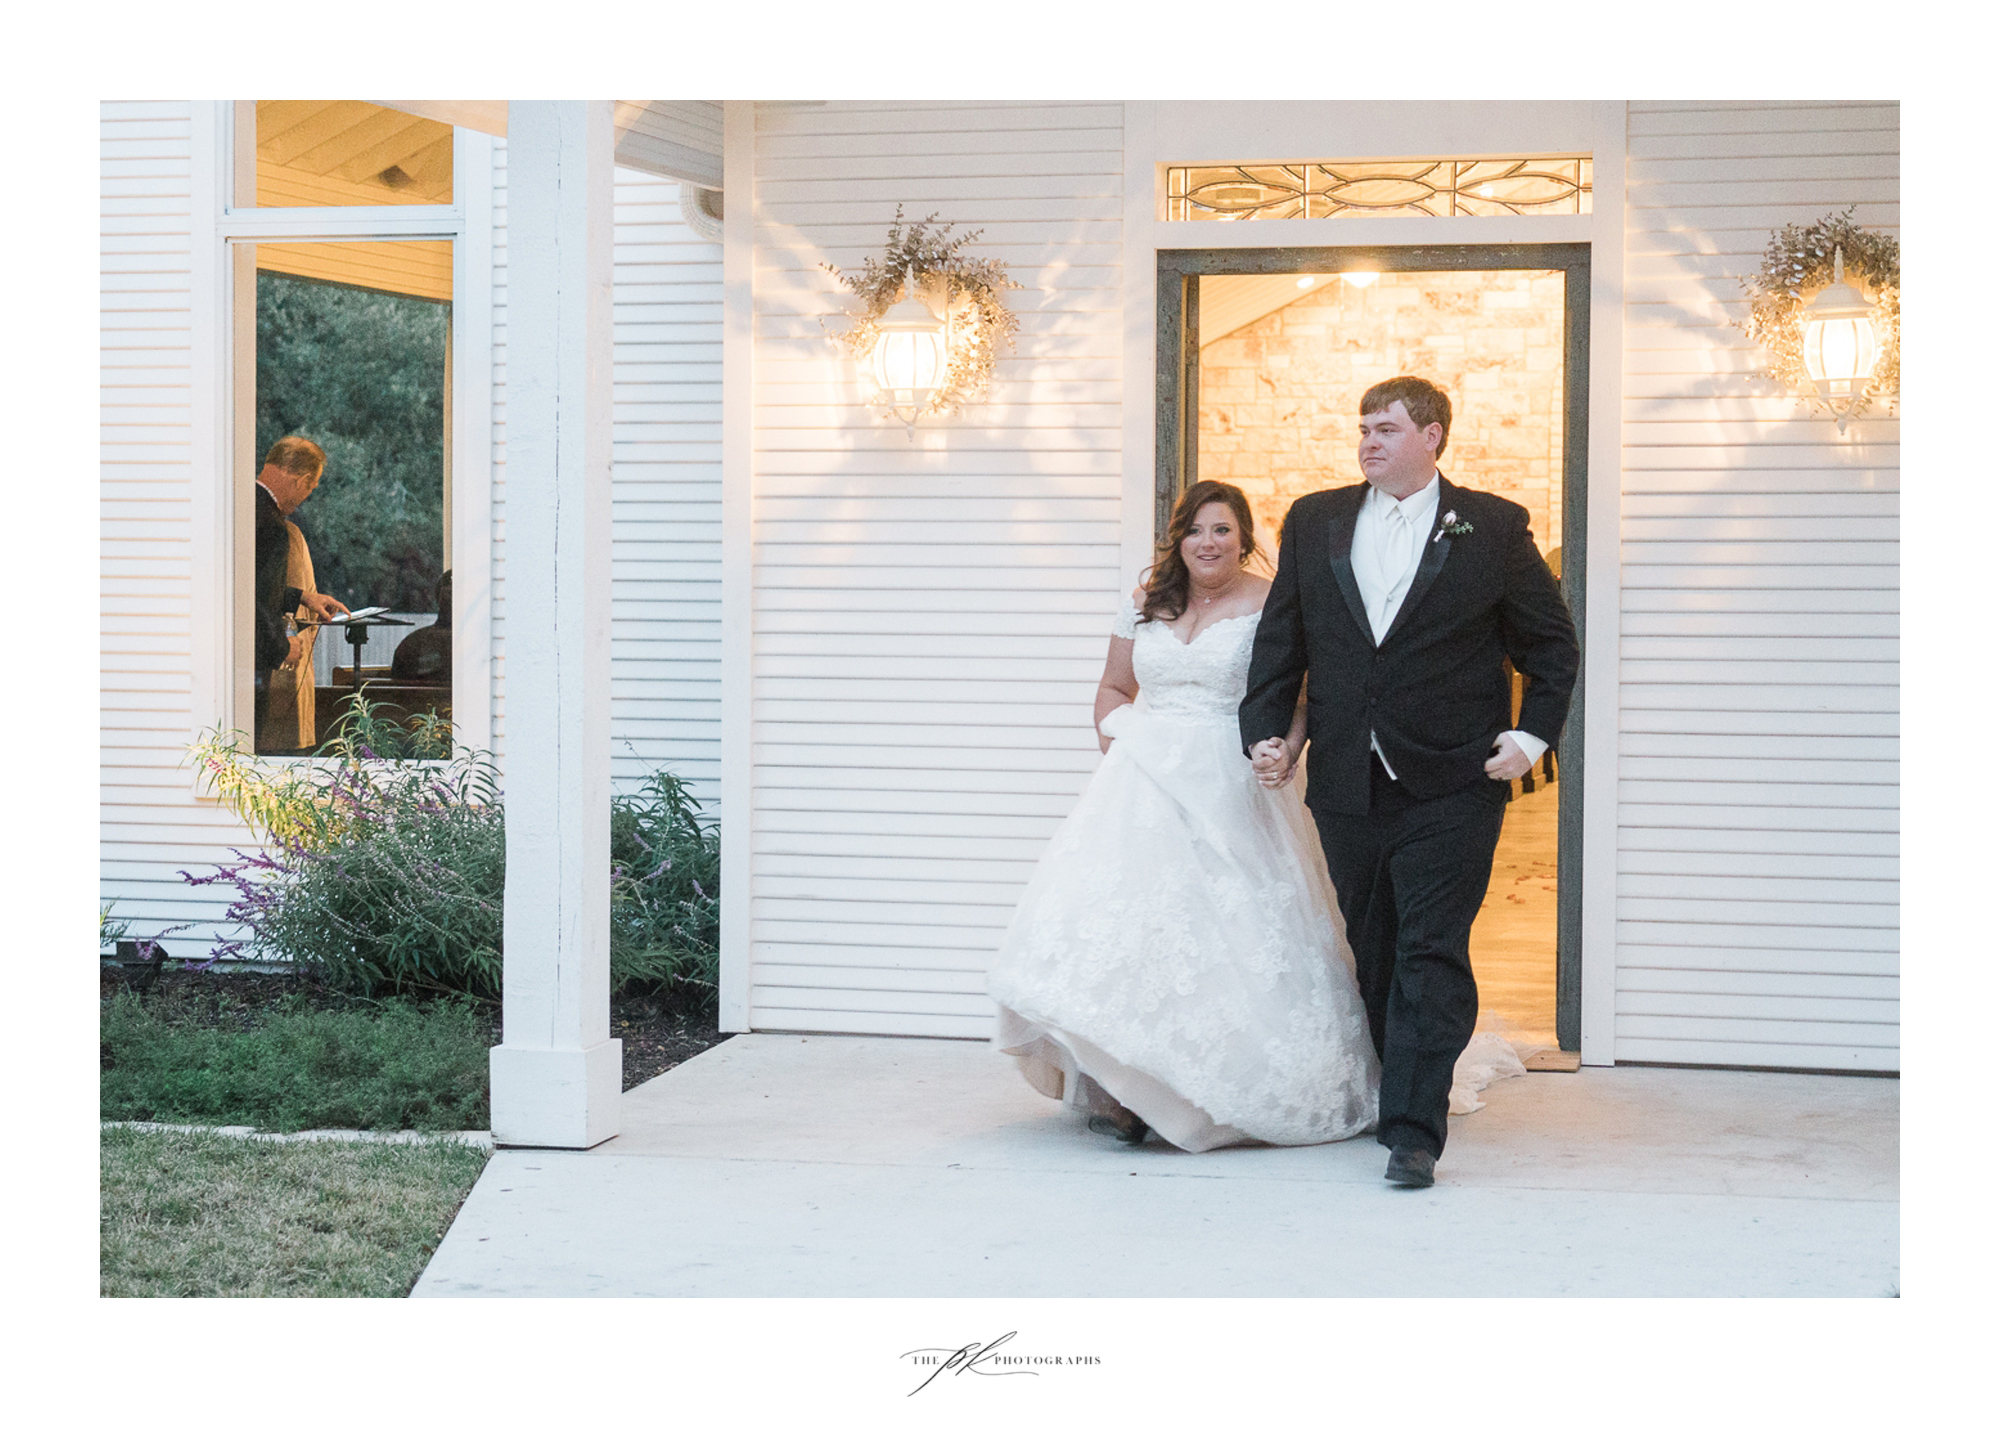 Emily and Lamar walking back up the aisle as husband and wife at their wedding ceremony in the open air chapel at the Chandelier of Gruene